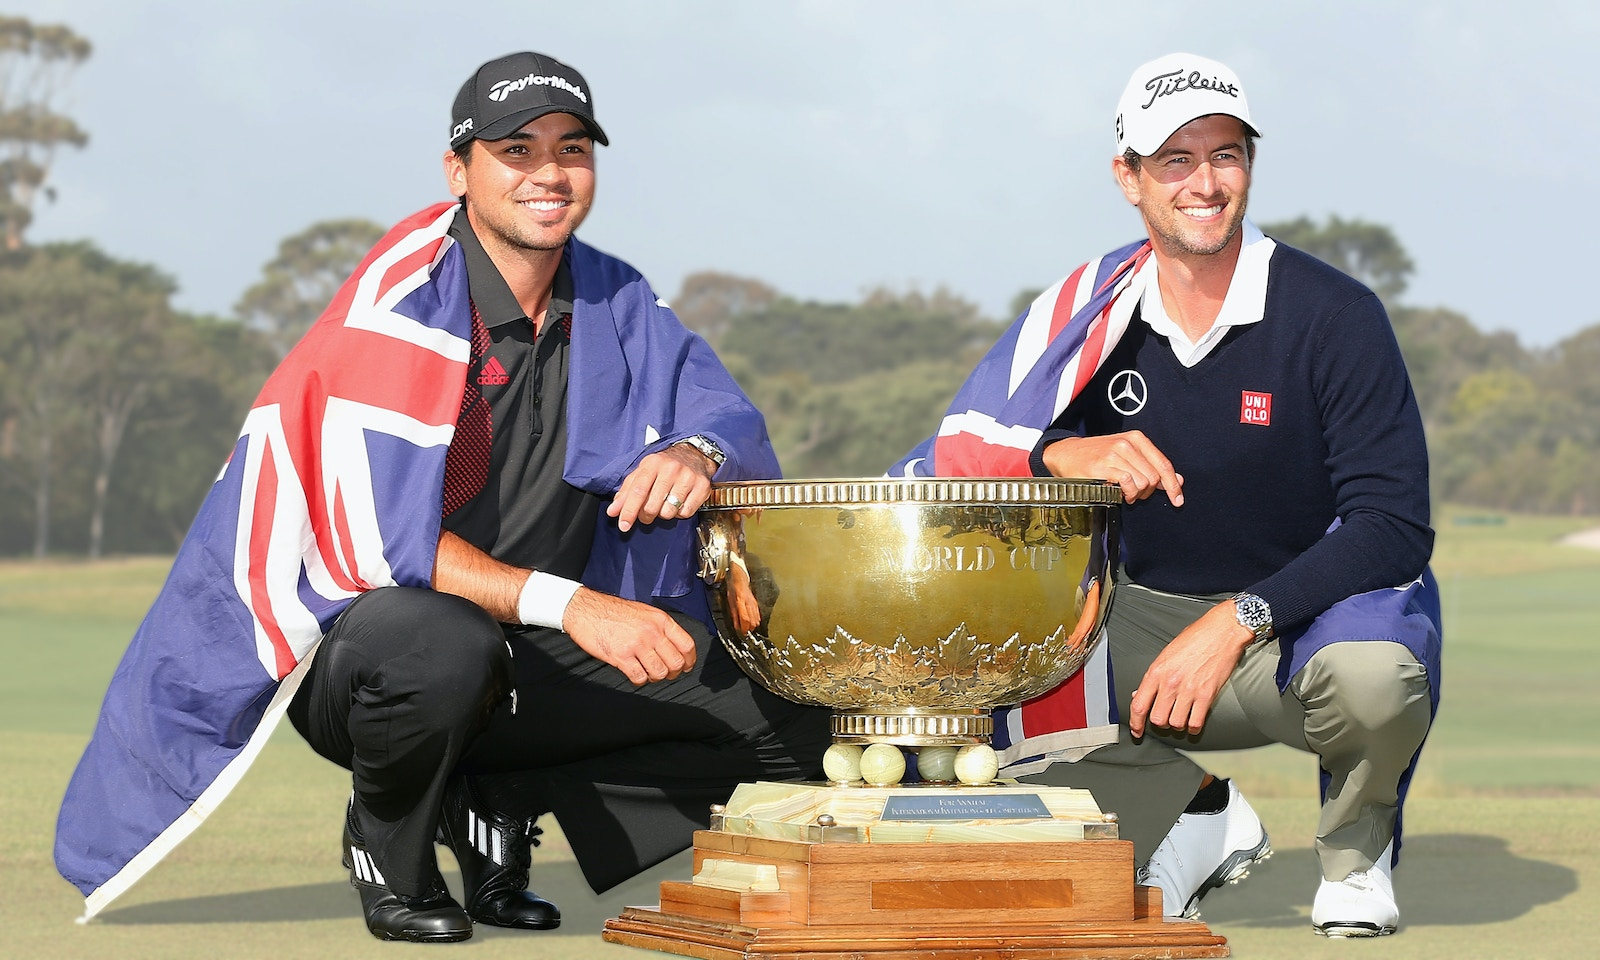 Previewing the 2018 ISPS Handa Melbourne World Cup of Golf